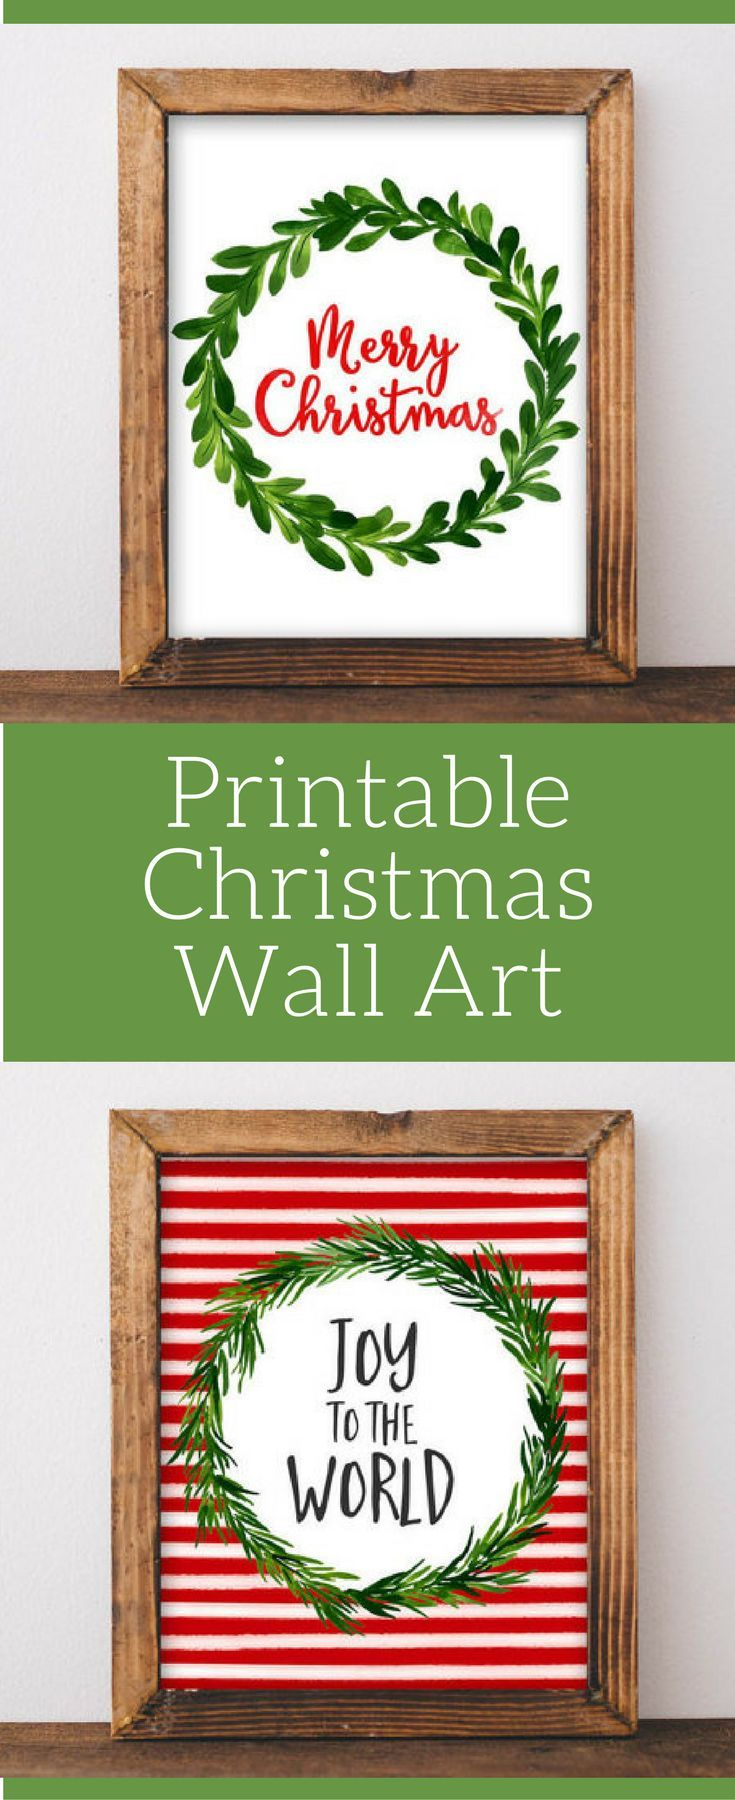 Printable christmas wall art on easy merry christmas wall art joy printable christmas wall art on easy merry christmas wall art joy to the world diy christmas decor print yourself christmas wall decor christmas sign solutioingenieria Choice Image